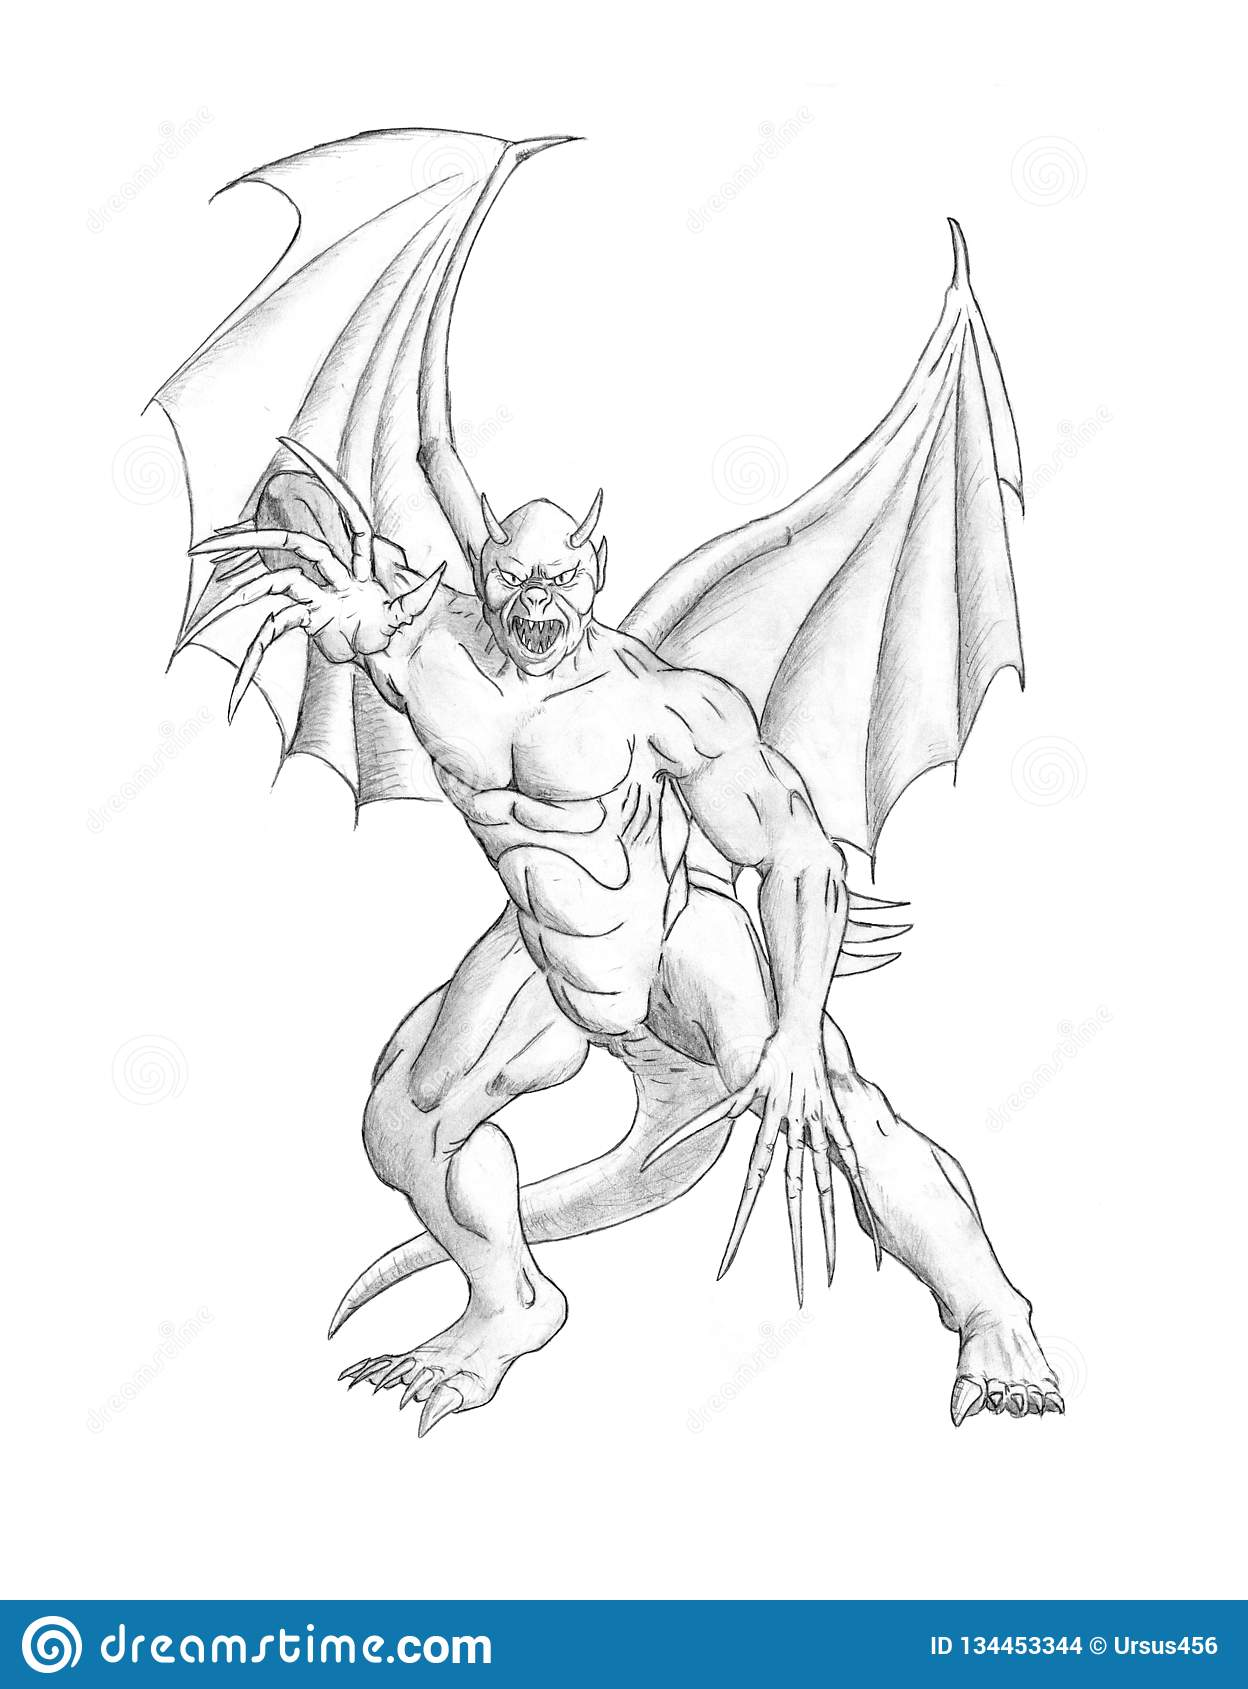 Pencil concept art drawing of fantasy winged demon or devil